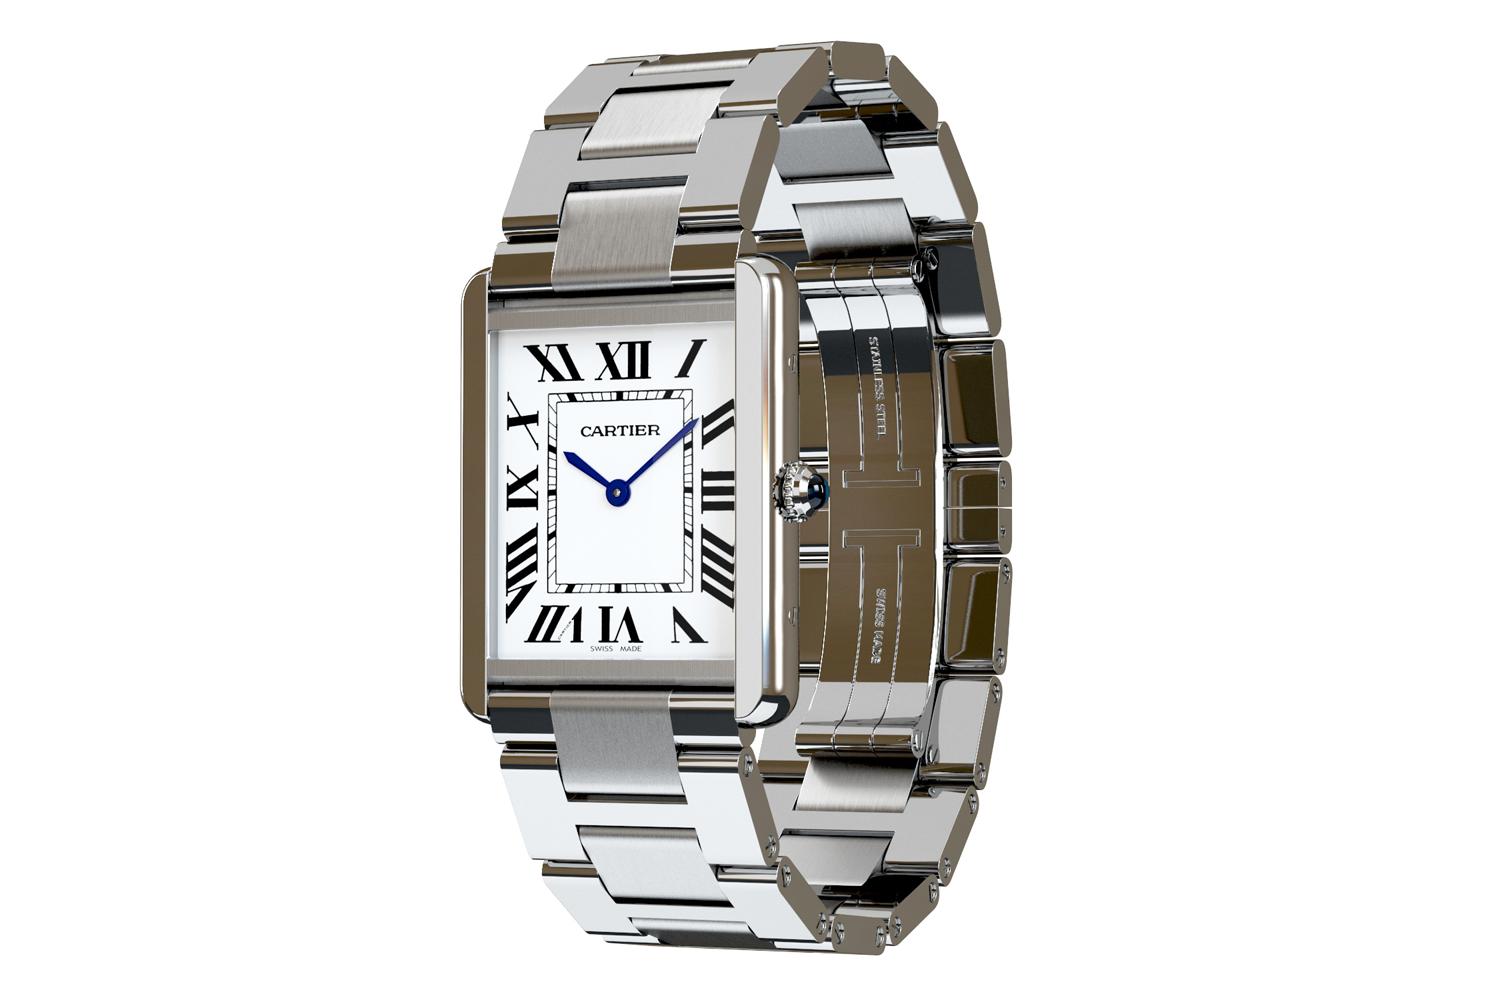 cartier watch 3d rendering and modeling